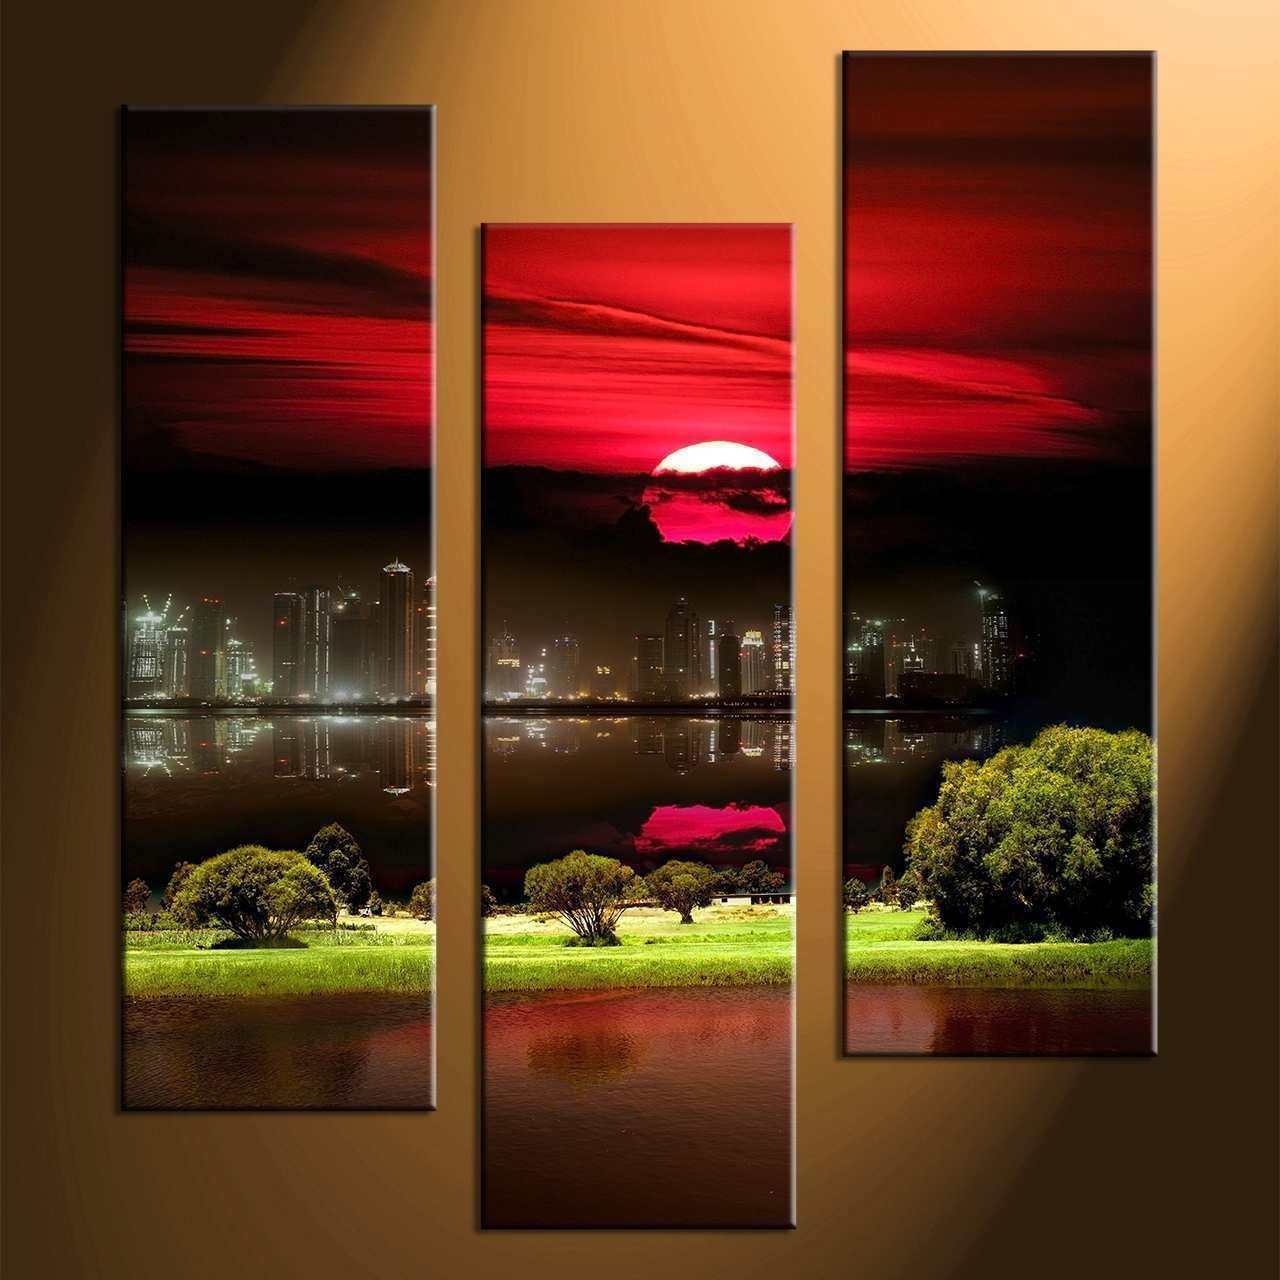 3 Canvas Paintings Beautiful 3 Piece Canvas Wall Art | Painting Ideas Throughout 3 Piece Wall Art (View 3 of 20)